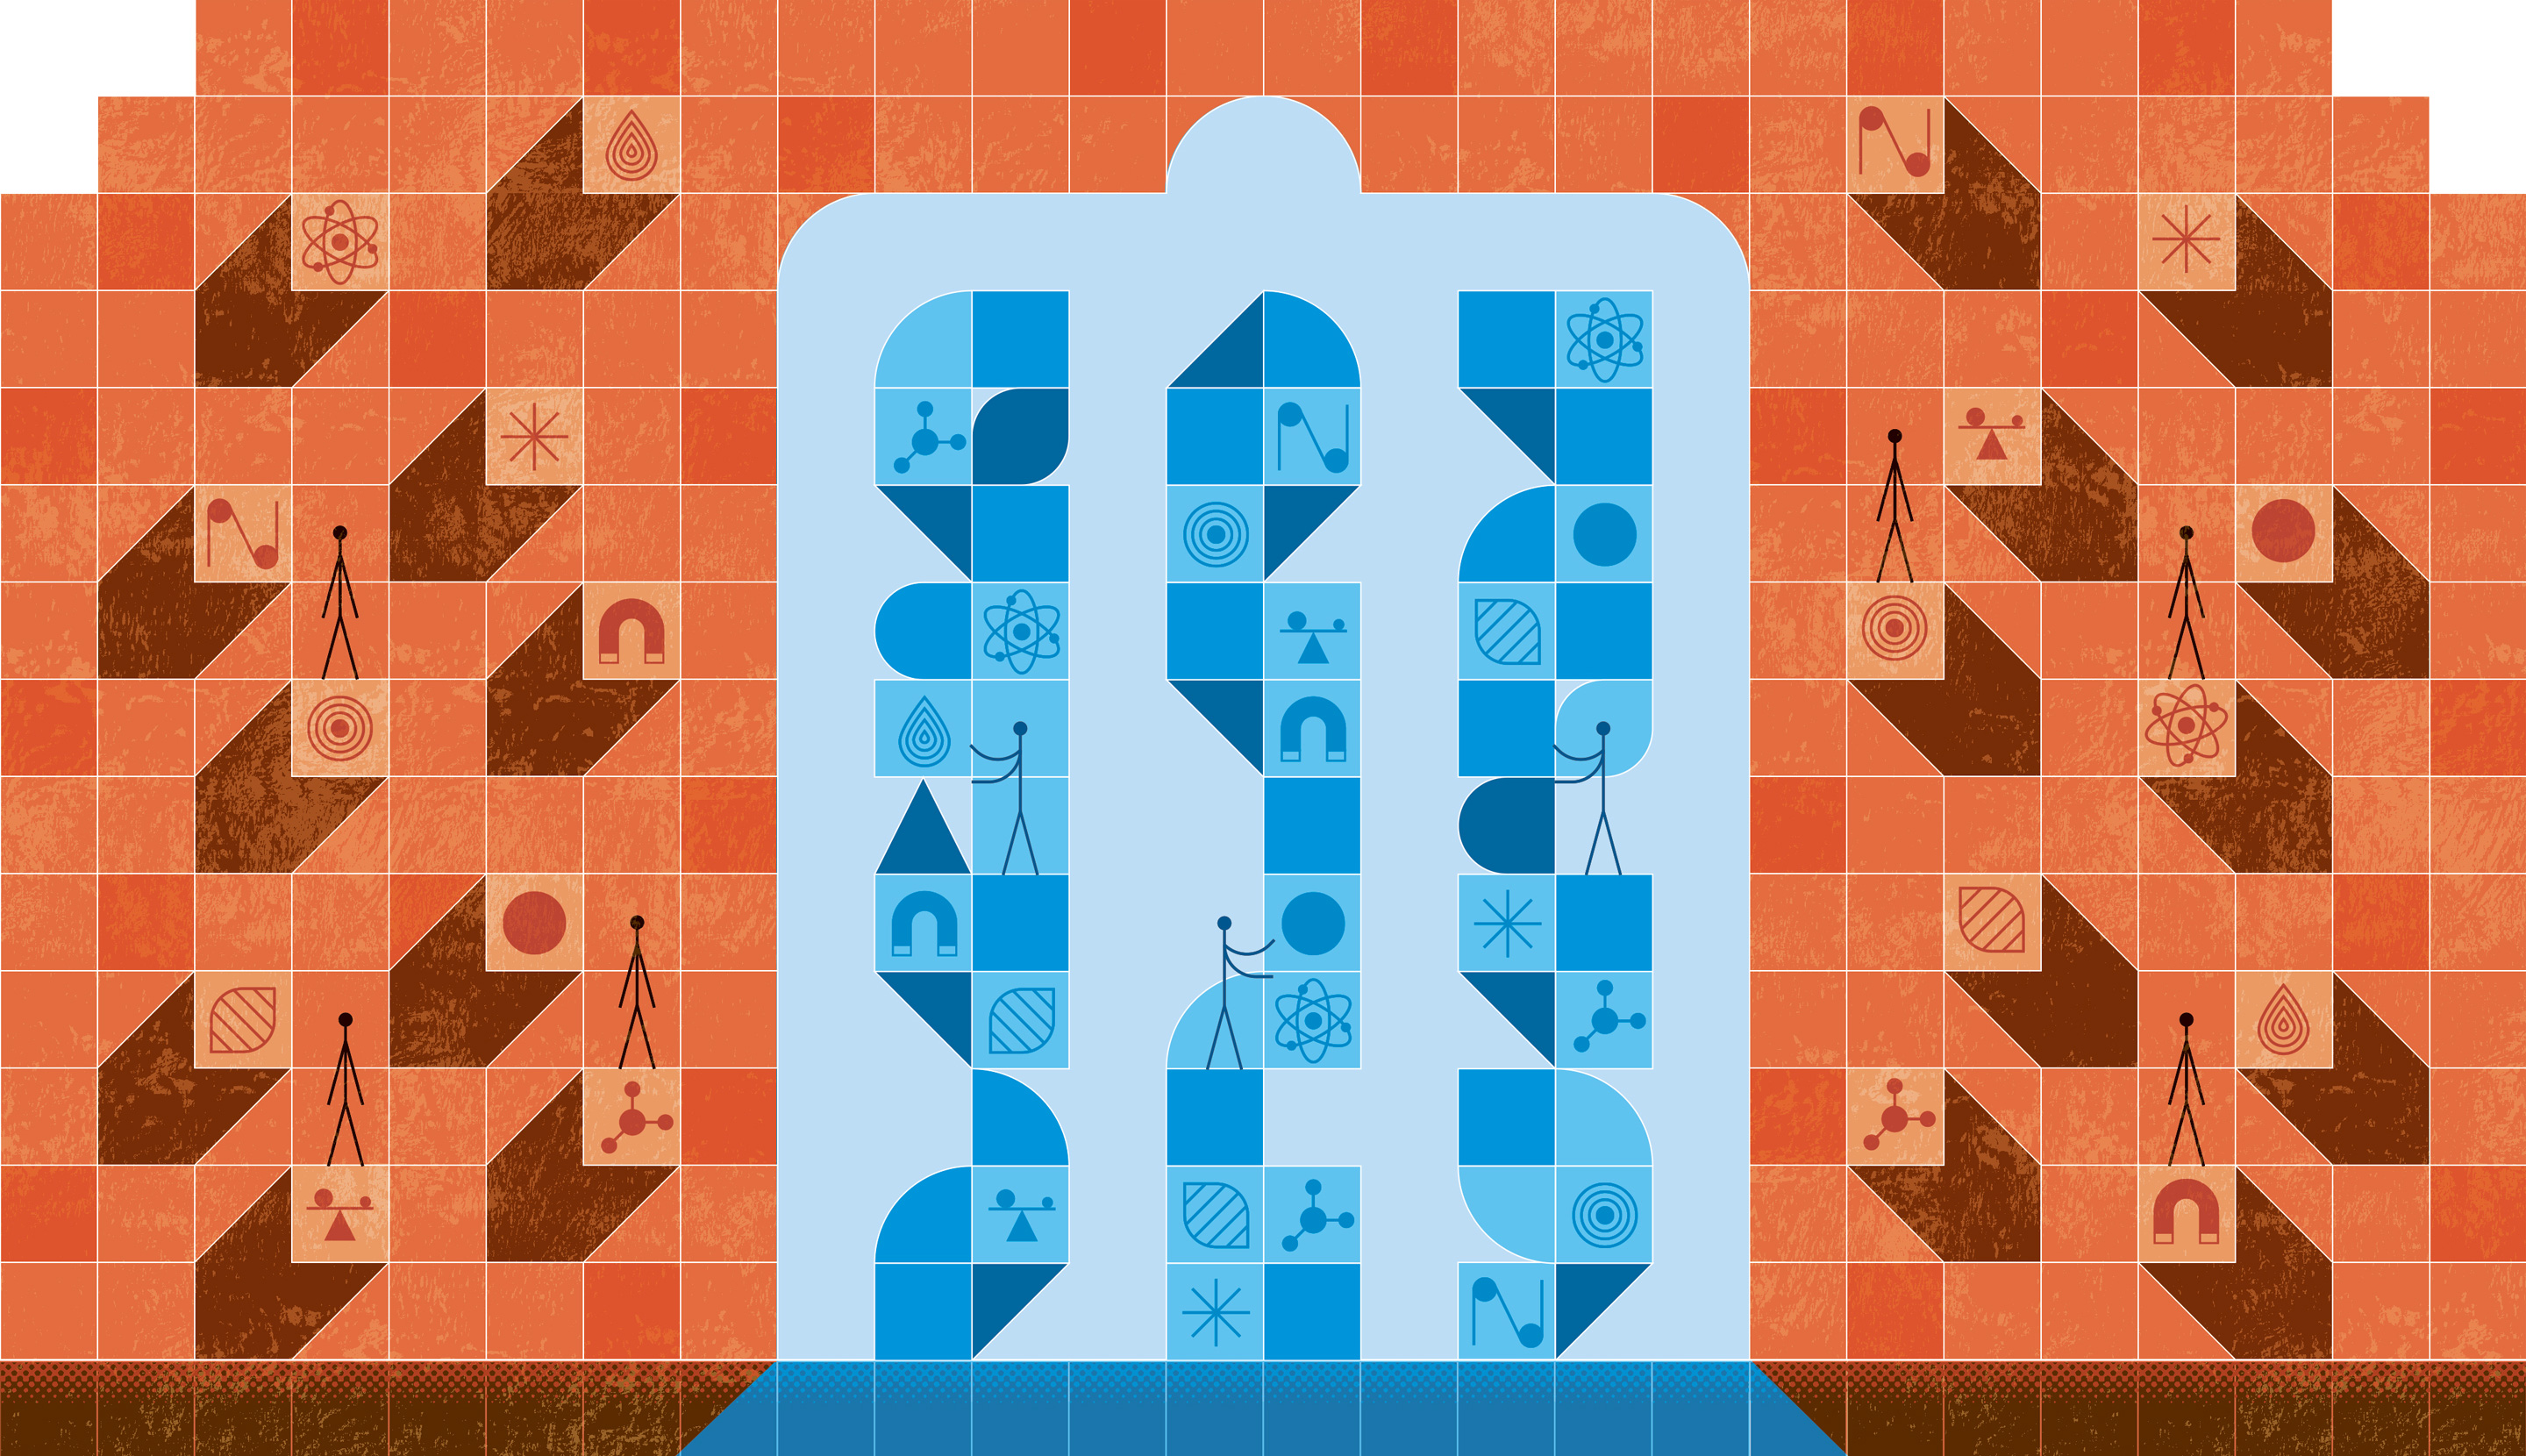 Illustration showing orange building blocks outside a doorway that opens onto blue towers made up of similar building blocks.